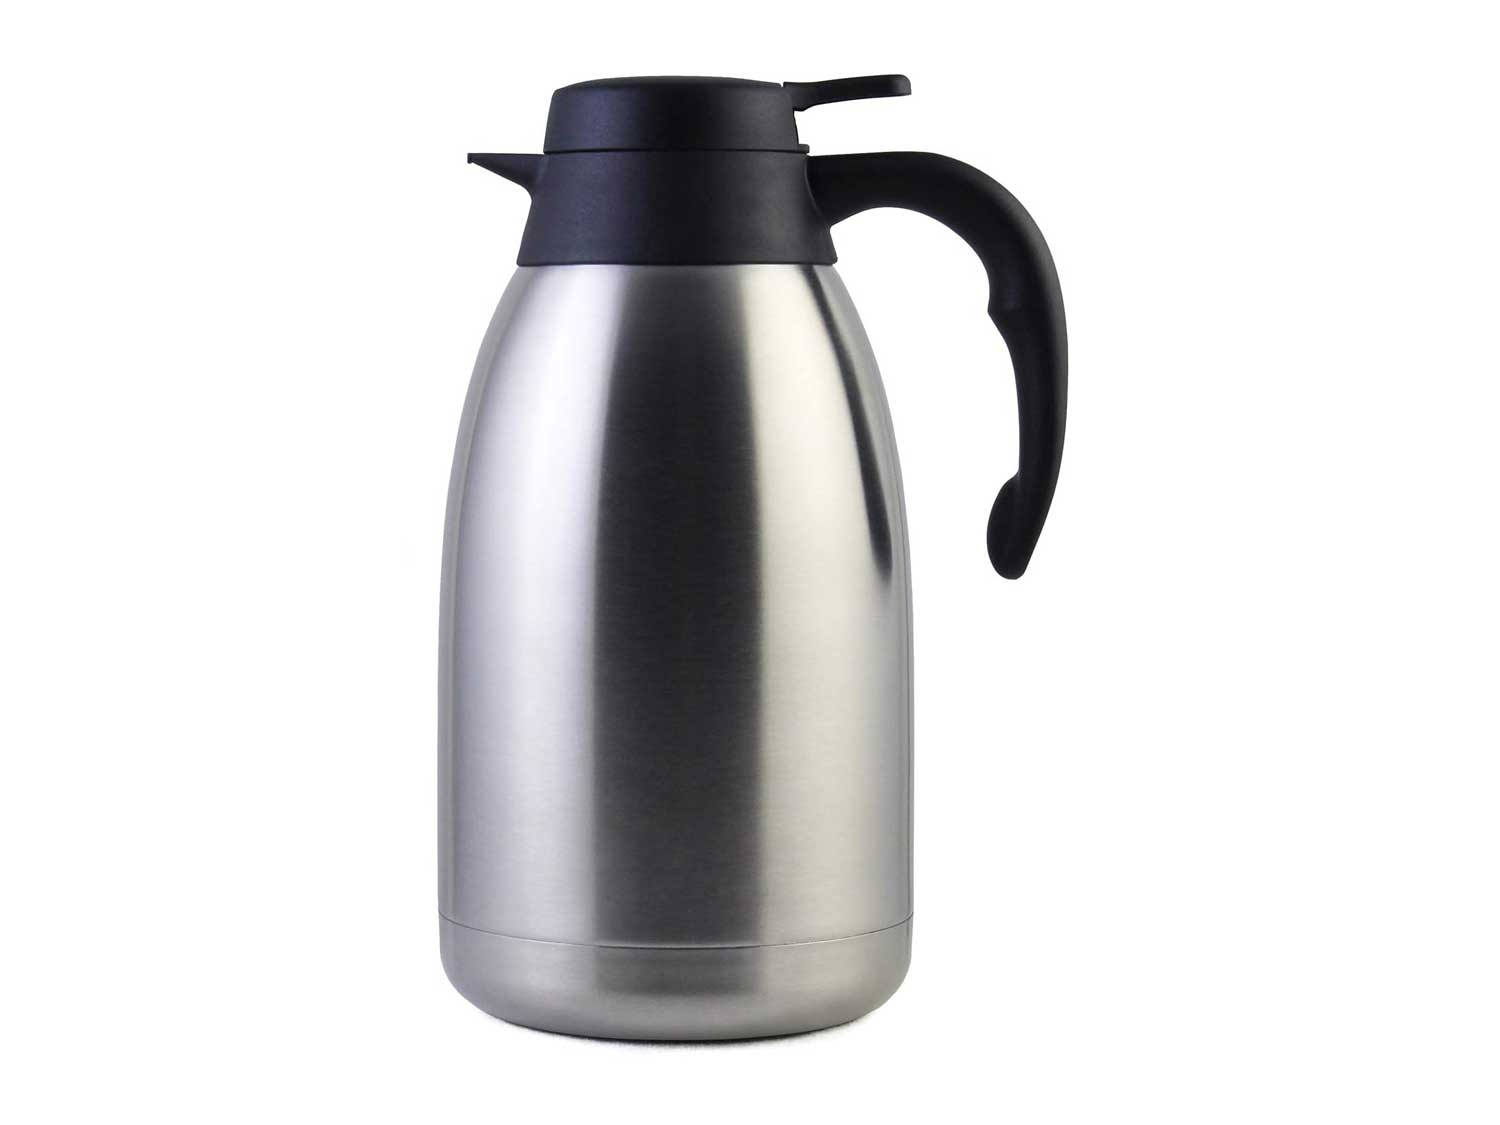 68 Oz Stainless Steel Thermal Coffee Carafe